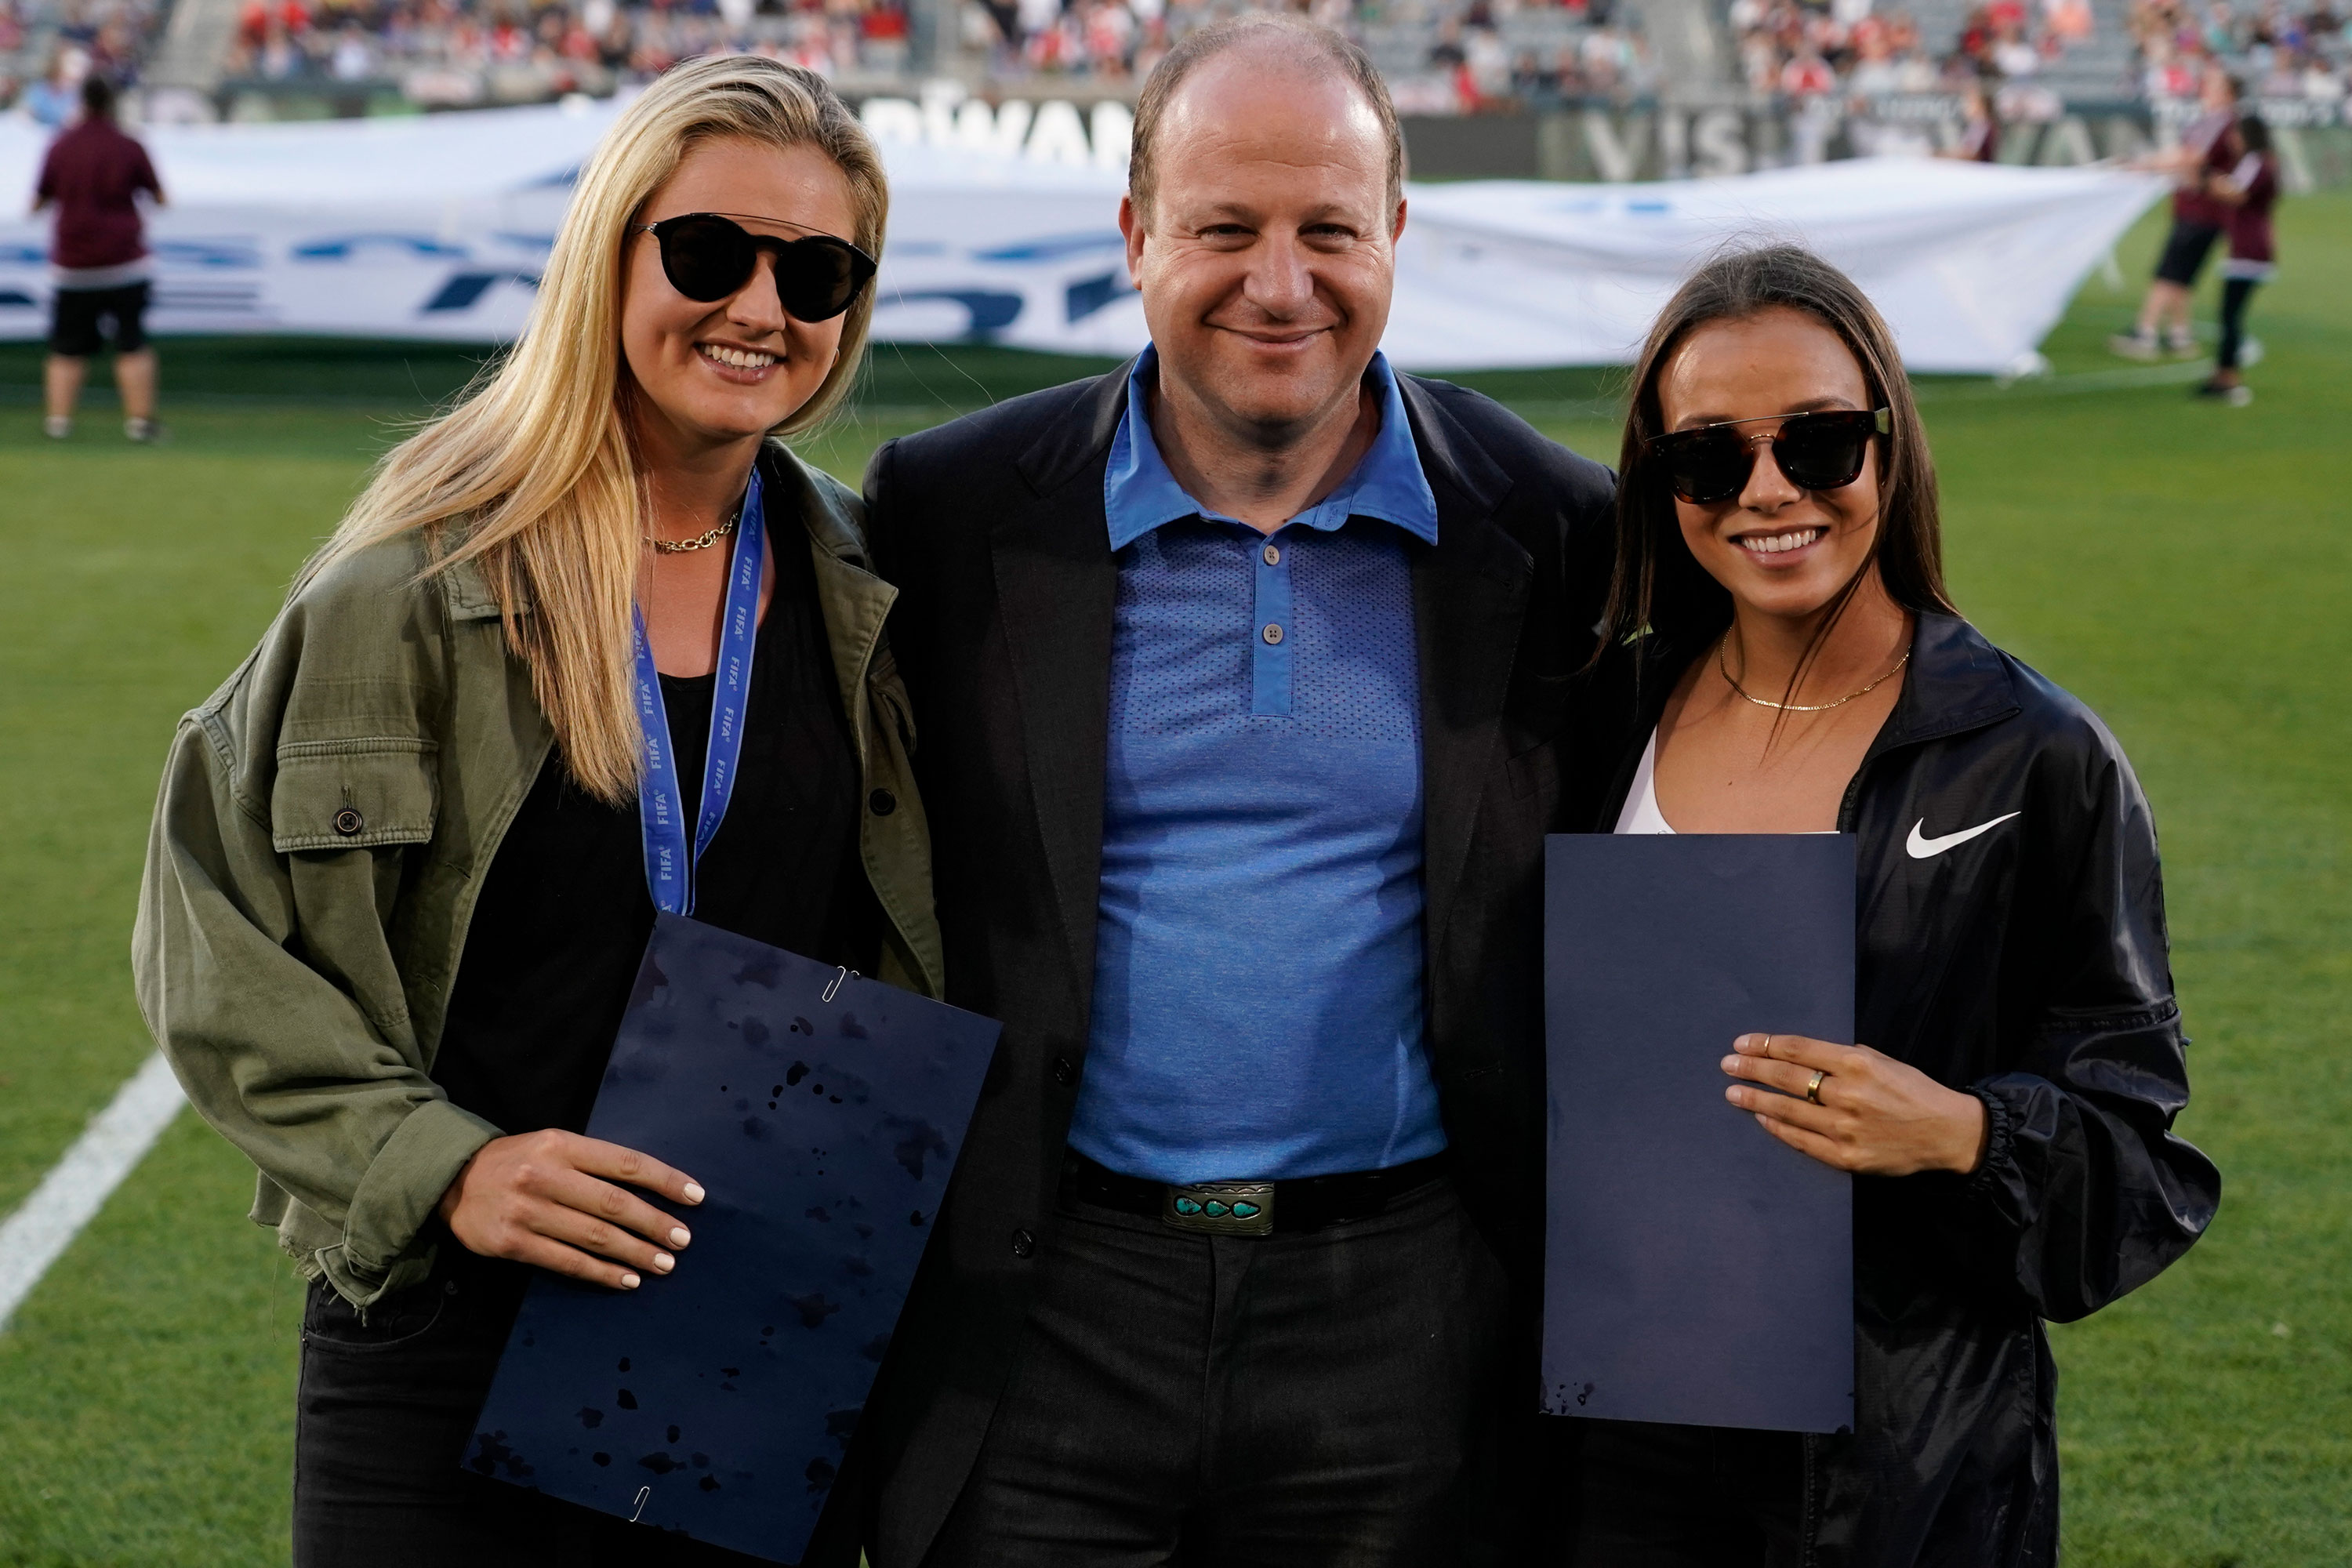 Colorado Gov. Jared Polis, center, poses with U.S. Women's National team players Lindsey Horan, left, and Mallory Pugh, right, during halftime at an international friendly soccer match between the Colorado Rapids and Arsenal FC, Monday, July 15, 2019, in Commerce City, Colo.